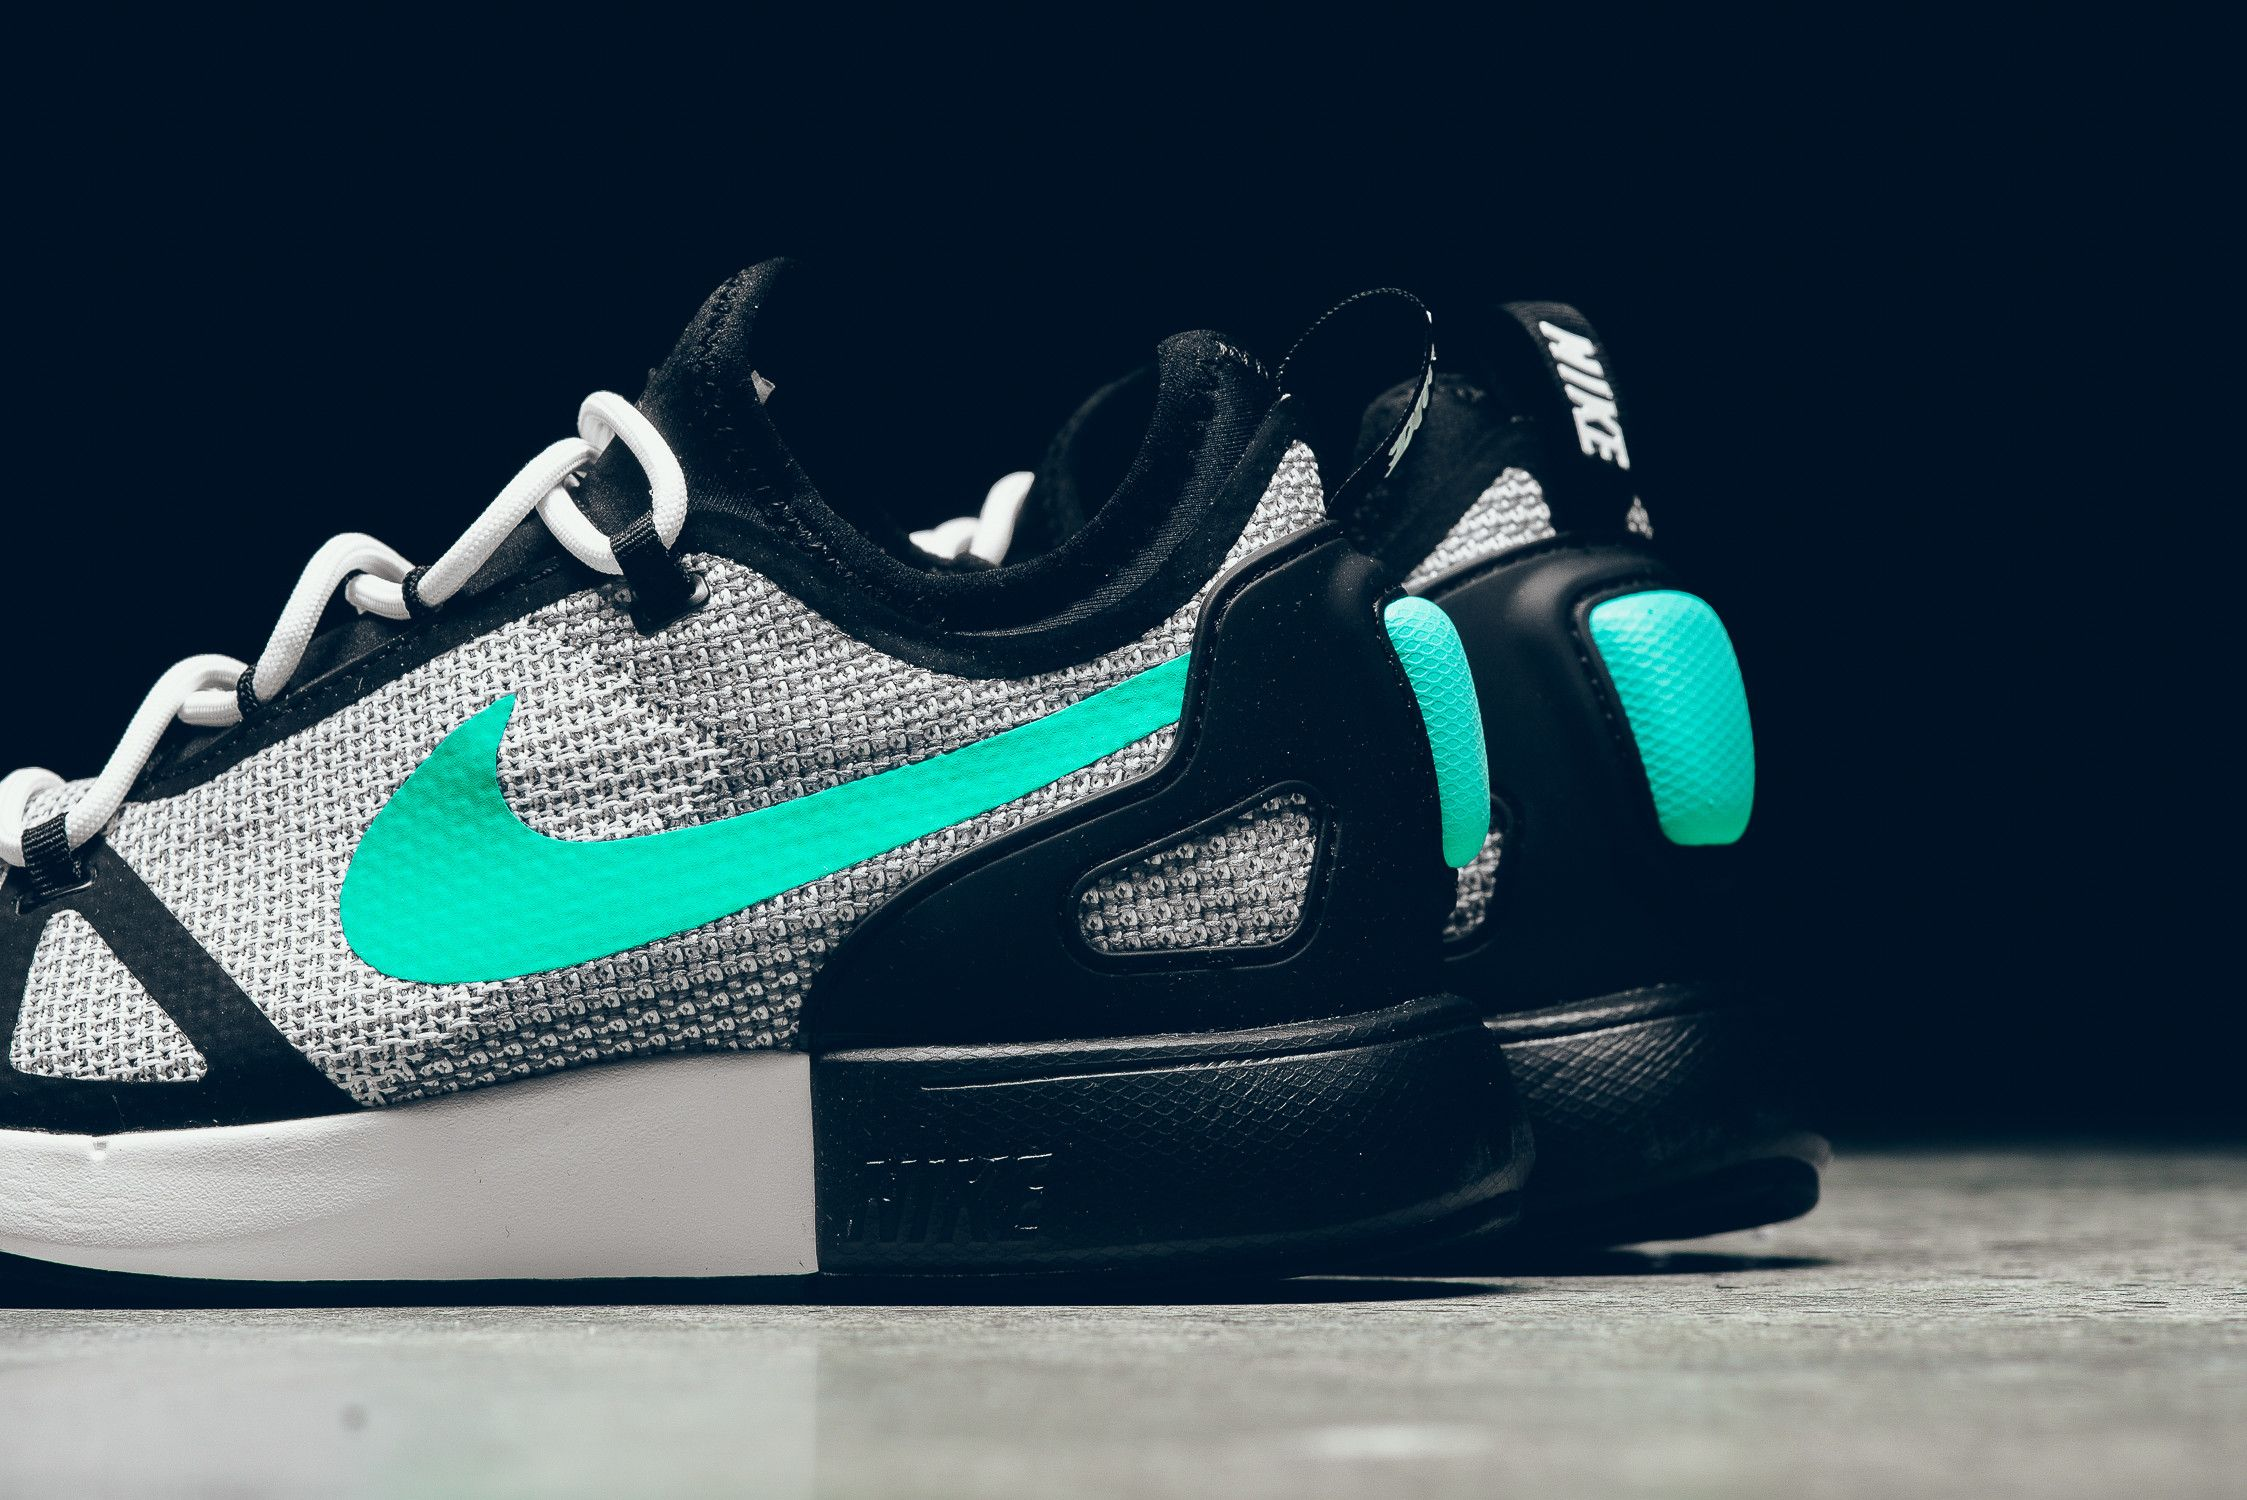 fe8711cf8d You can pick up the Nike Duel Racer in this White/Black/Menta colorway